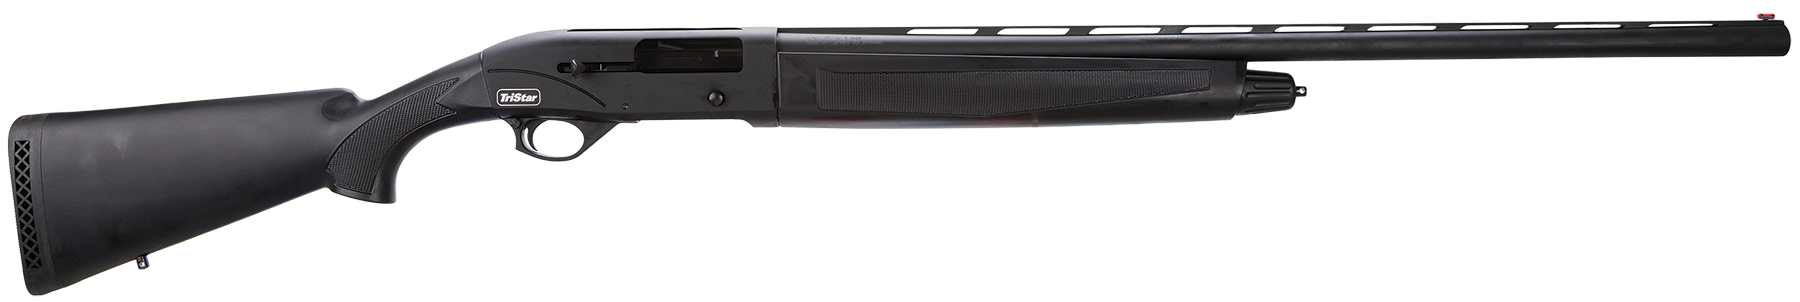 TriStar Viper G2 Synthetic Semi-Auto Shotgun 3'' 12 Gauge 28'' Black - Synthetic - Black